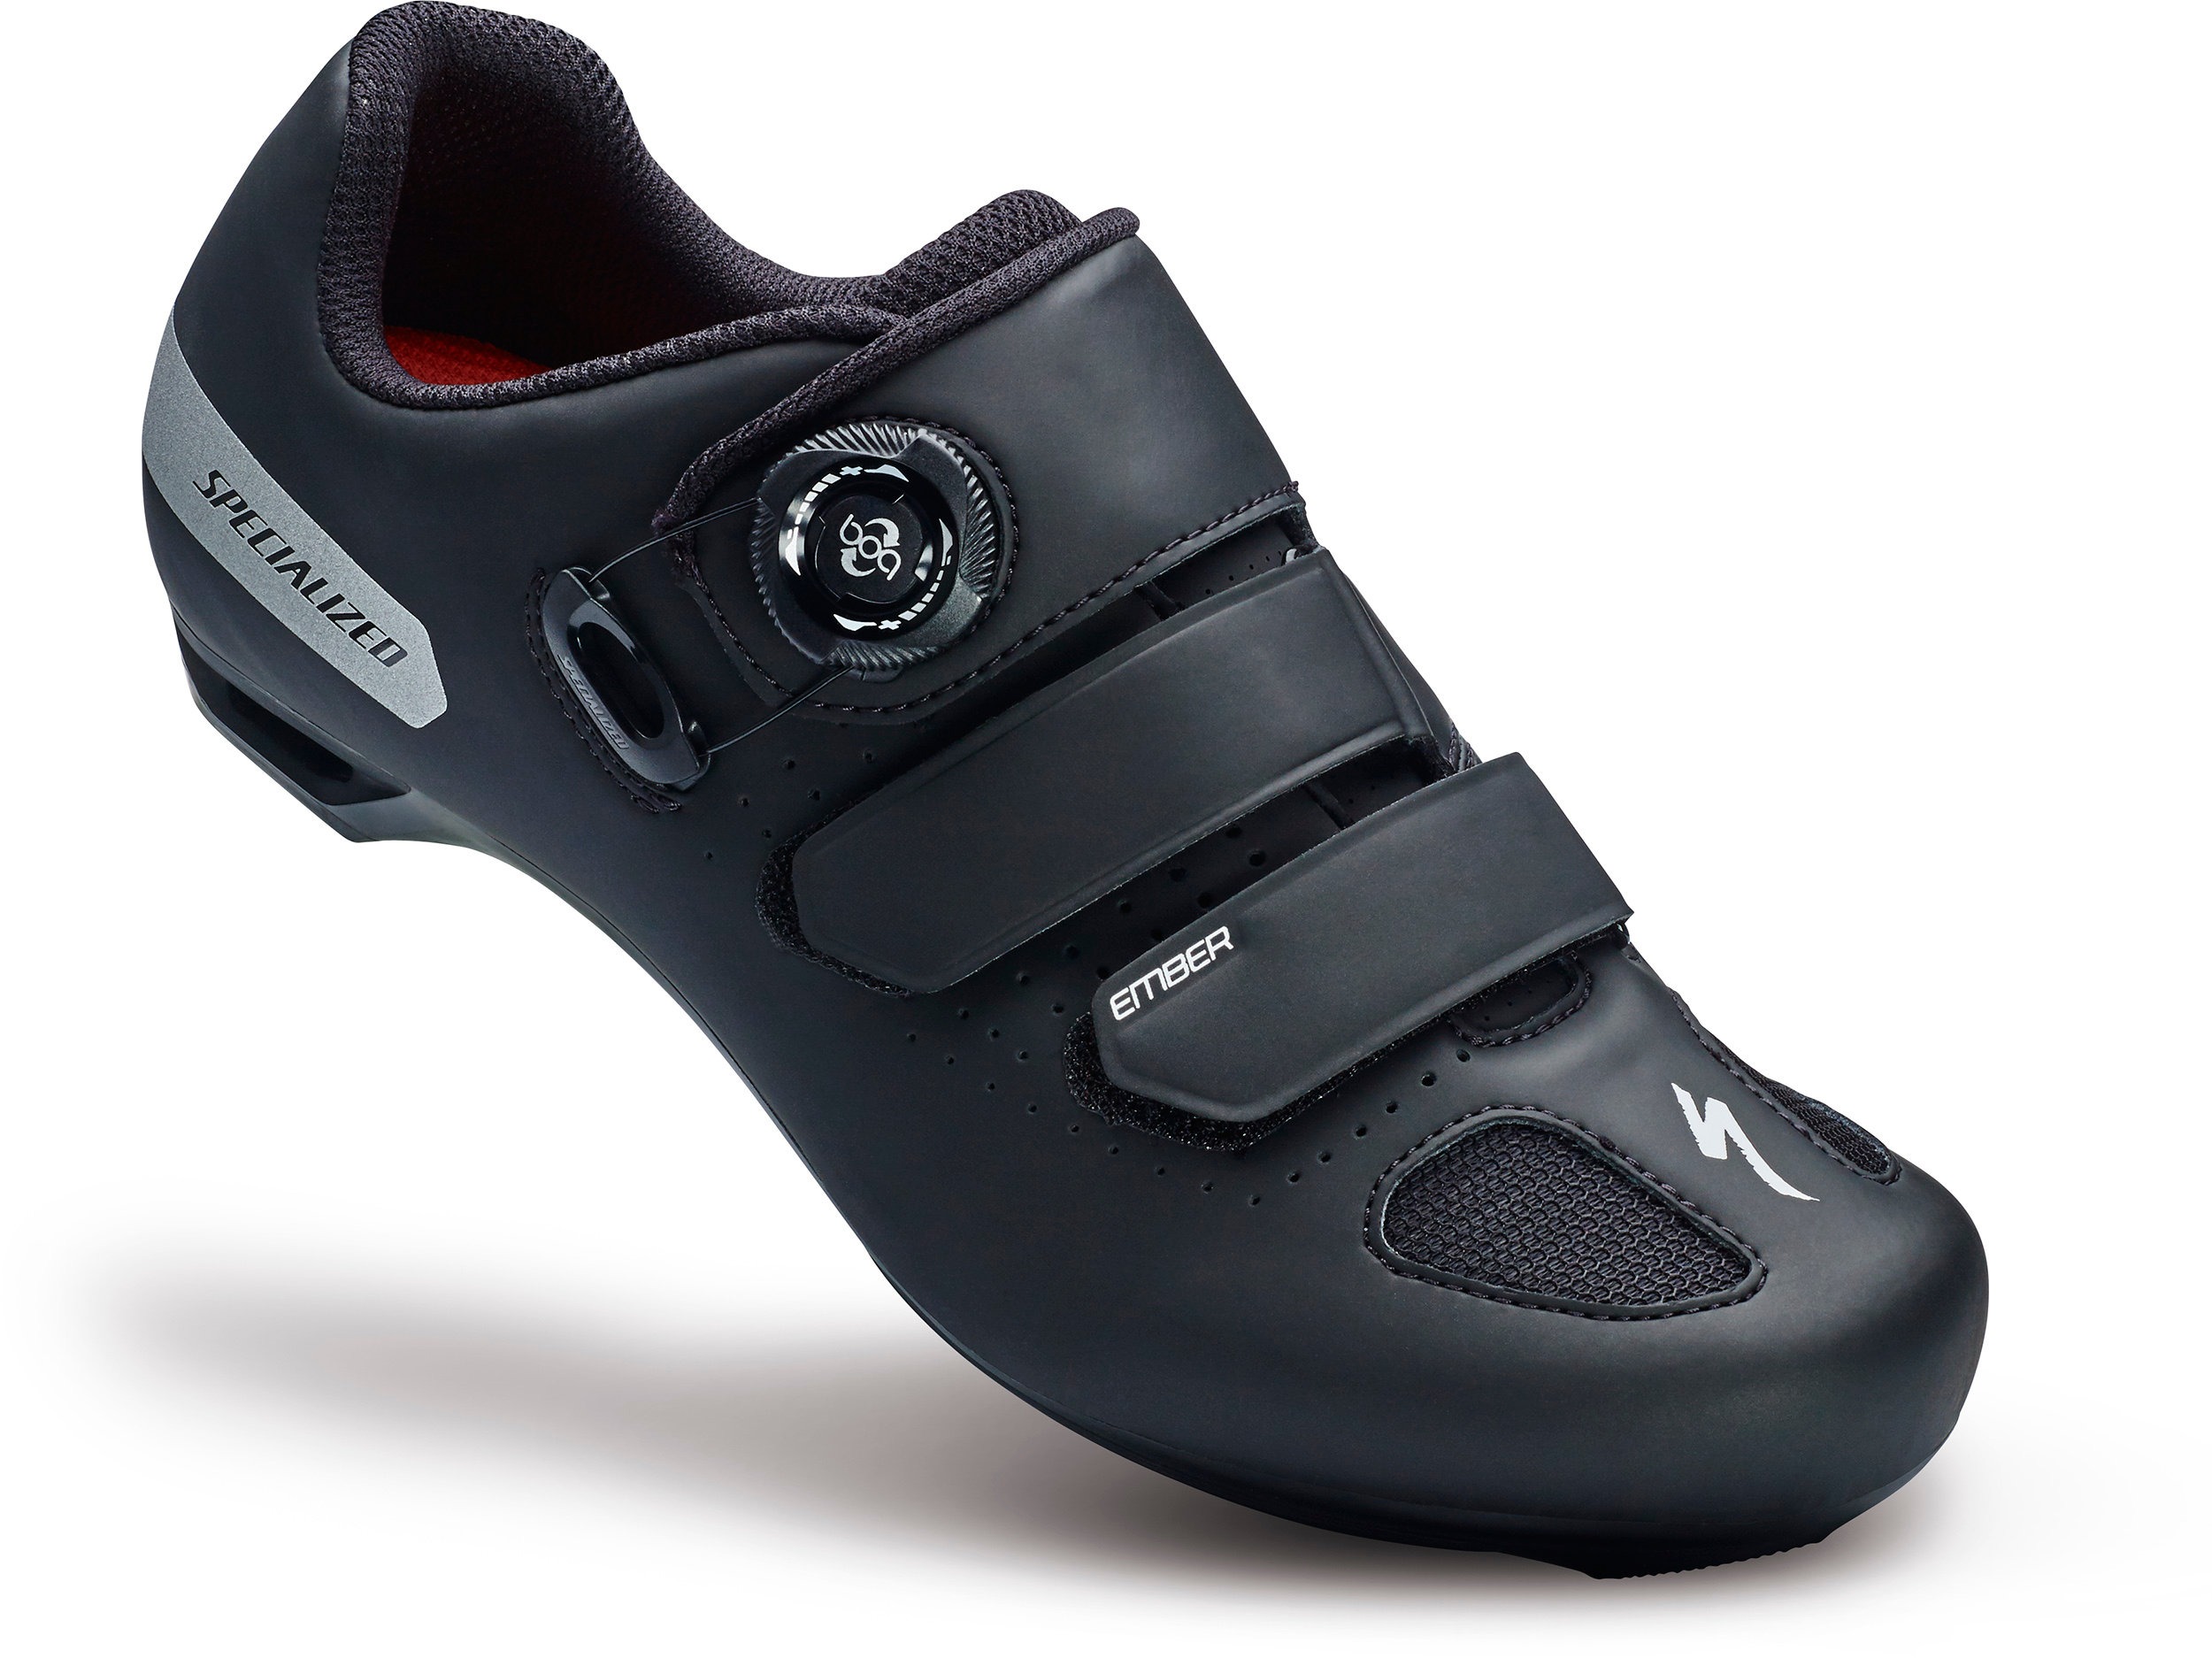 SPECIALIZED EMBER RD SHOE WMN BLK 36/5.75 - Bikedreams & Dustbikes